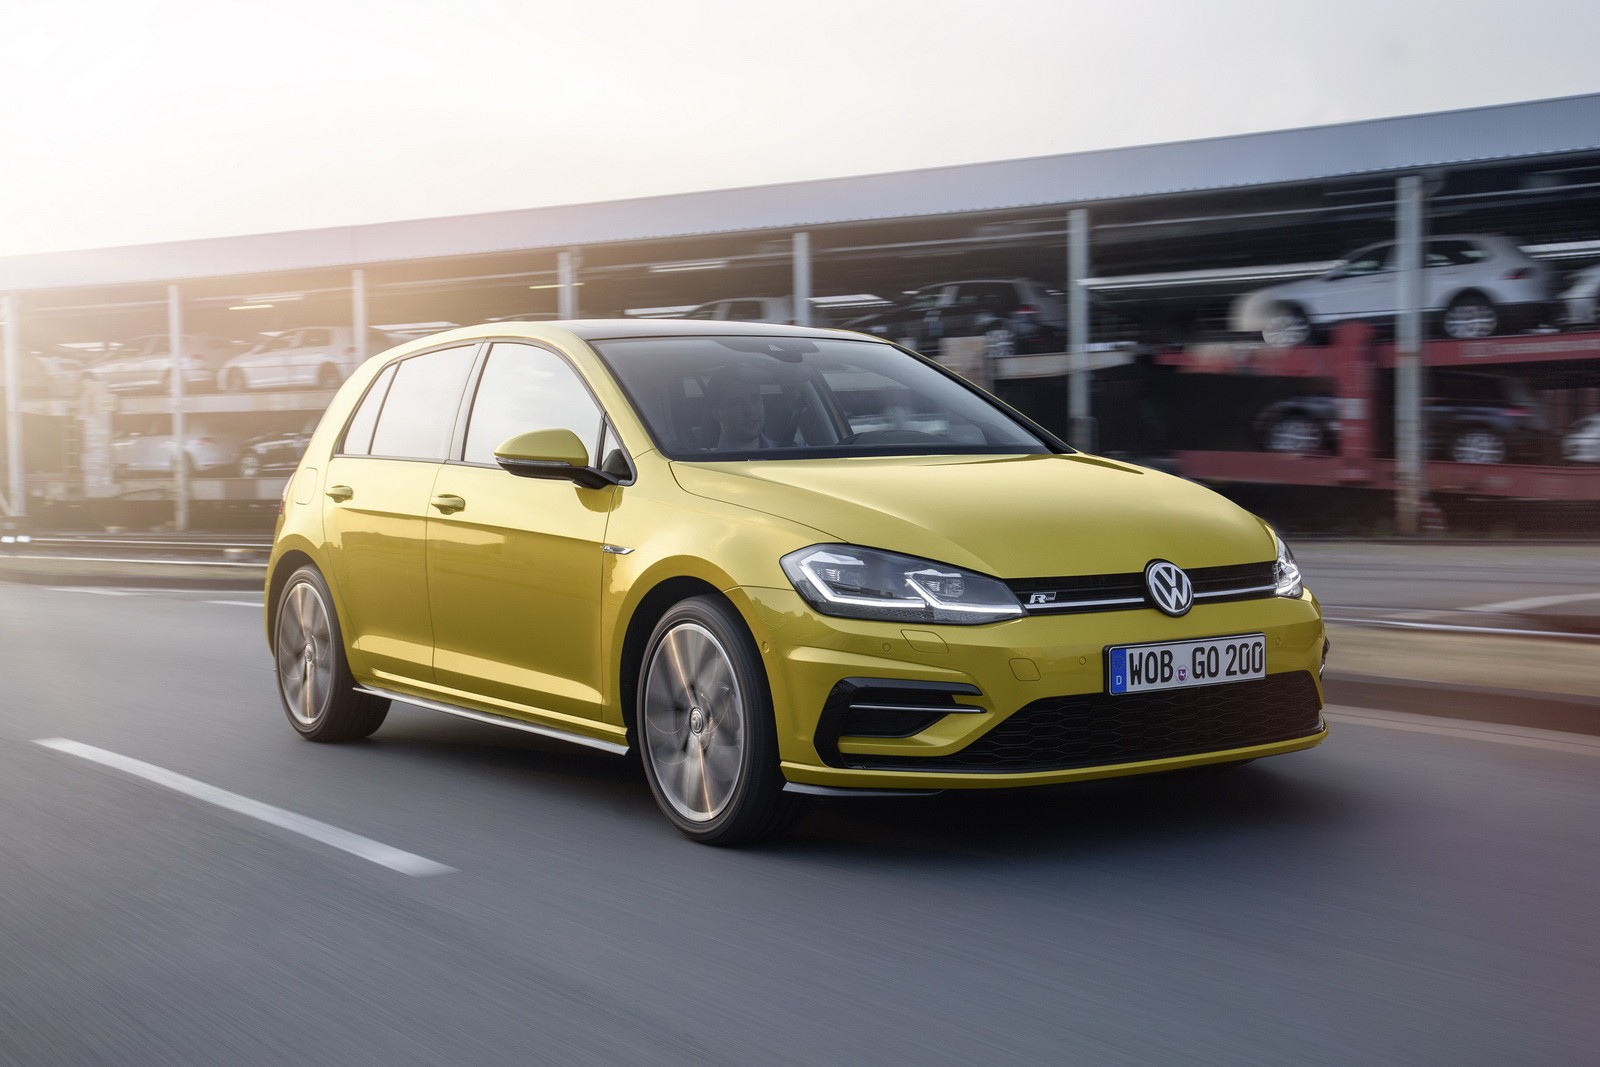 2017 Vw Golf Facelift Debuts With 1 5 Tsi Led Headlights And Golden Paint